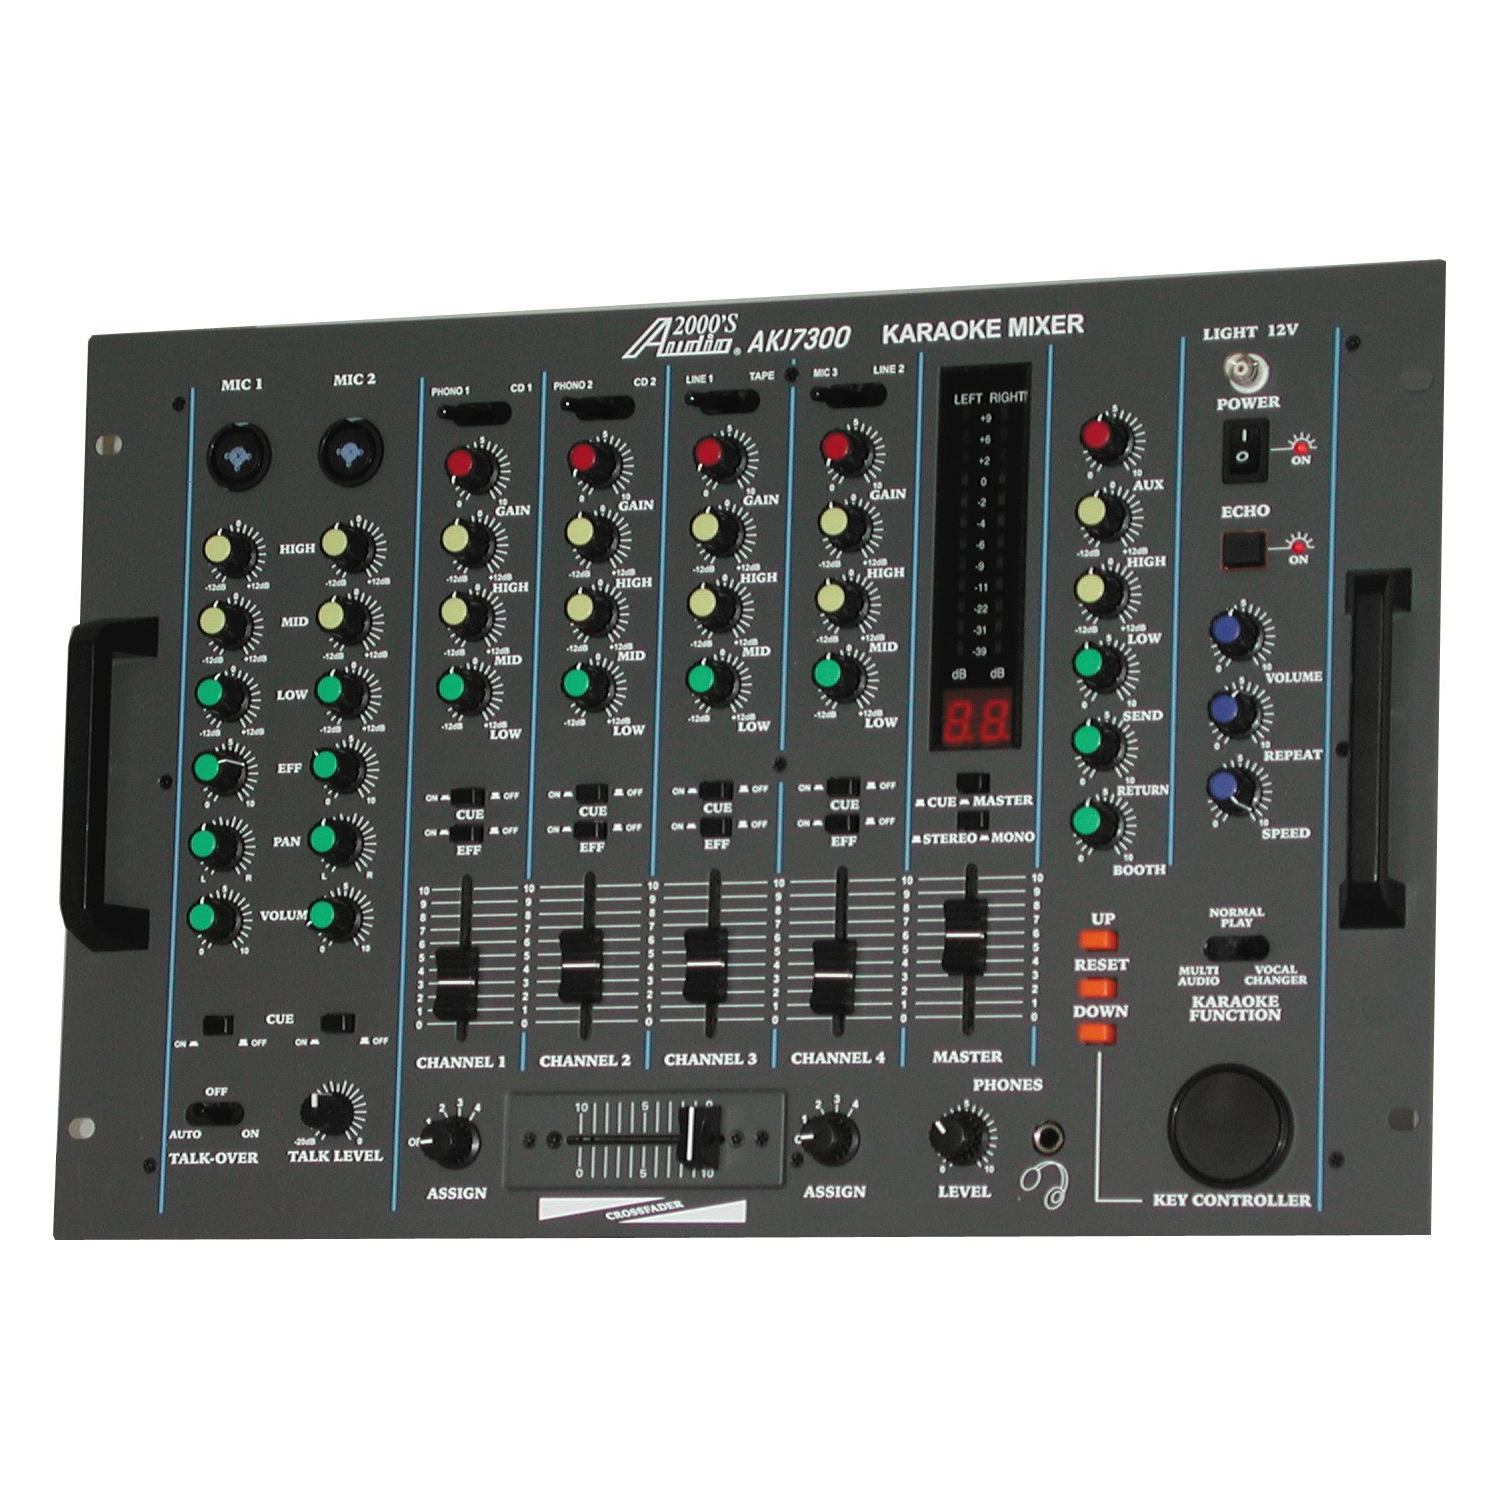 Audio 2000's AKJ-7300 Mixer